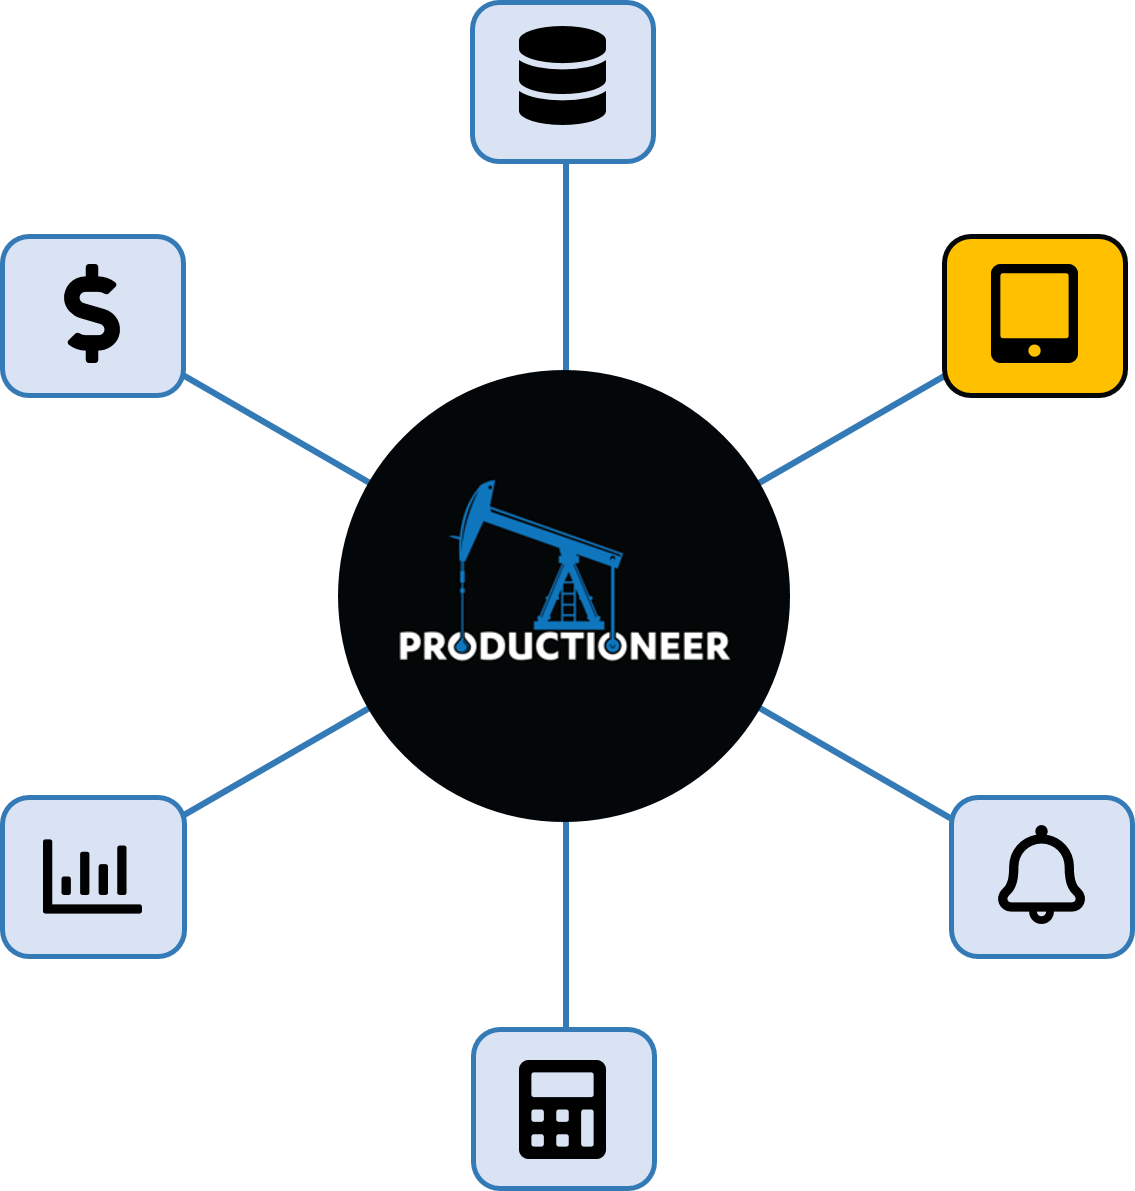 Productioneer supports multiple devices feature wheel